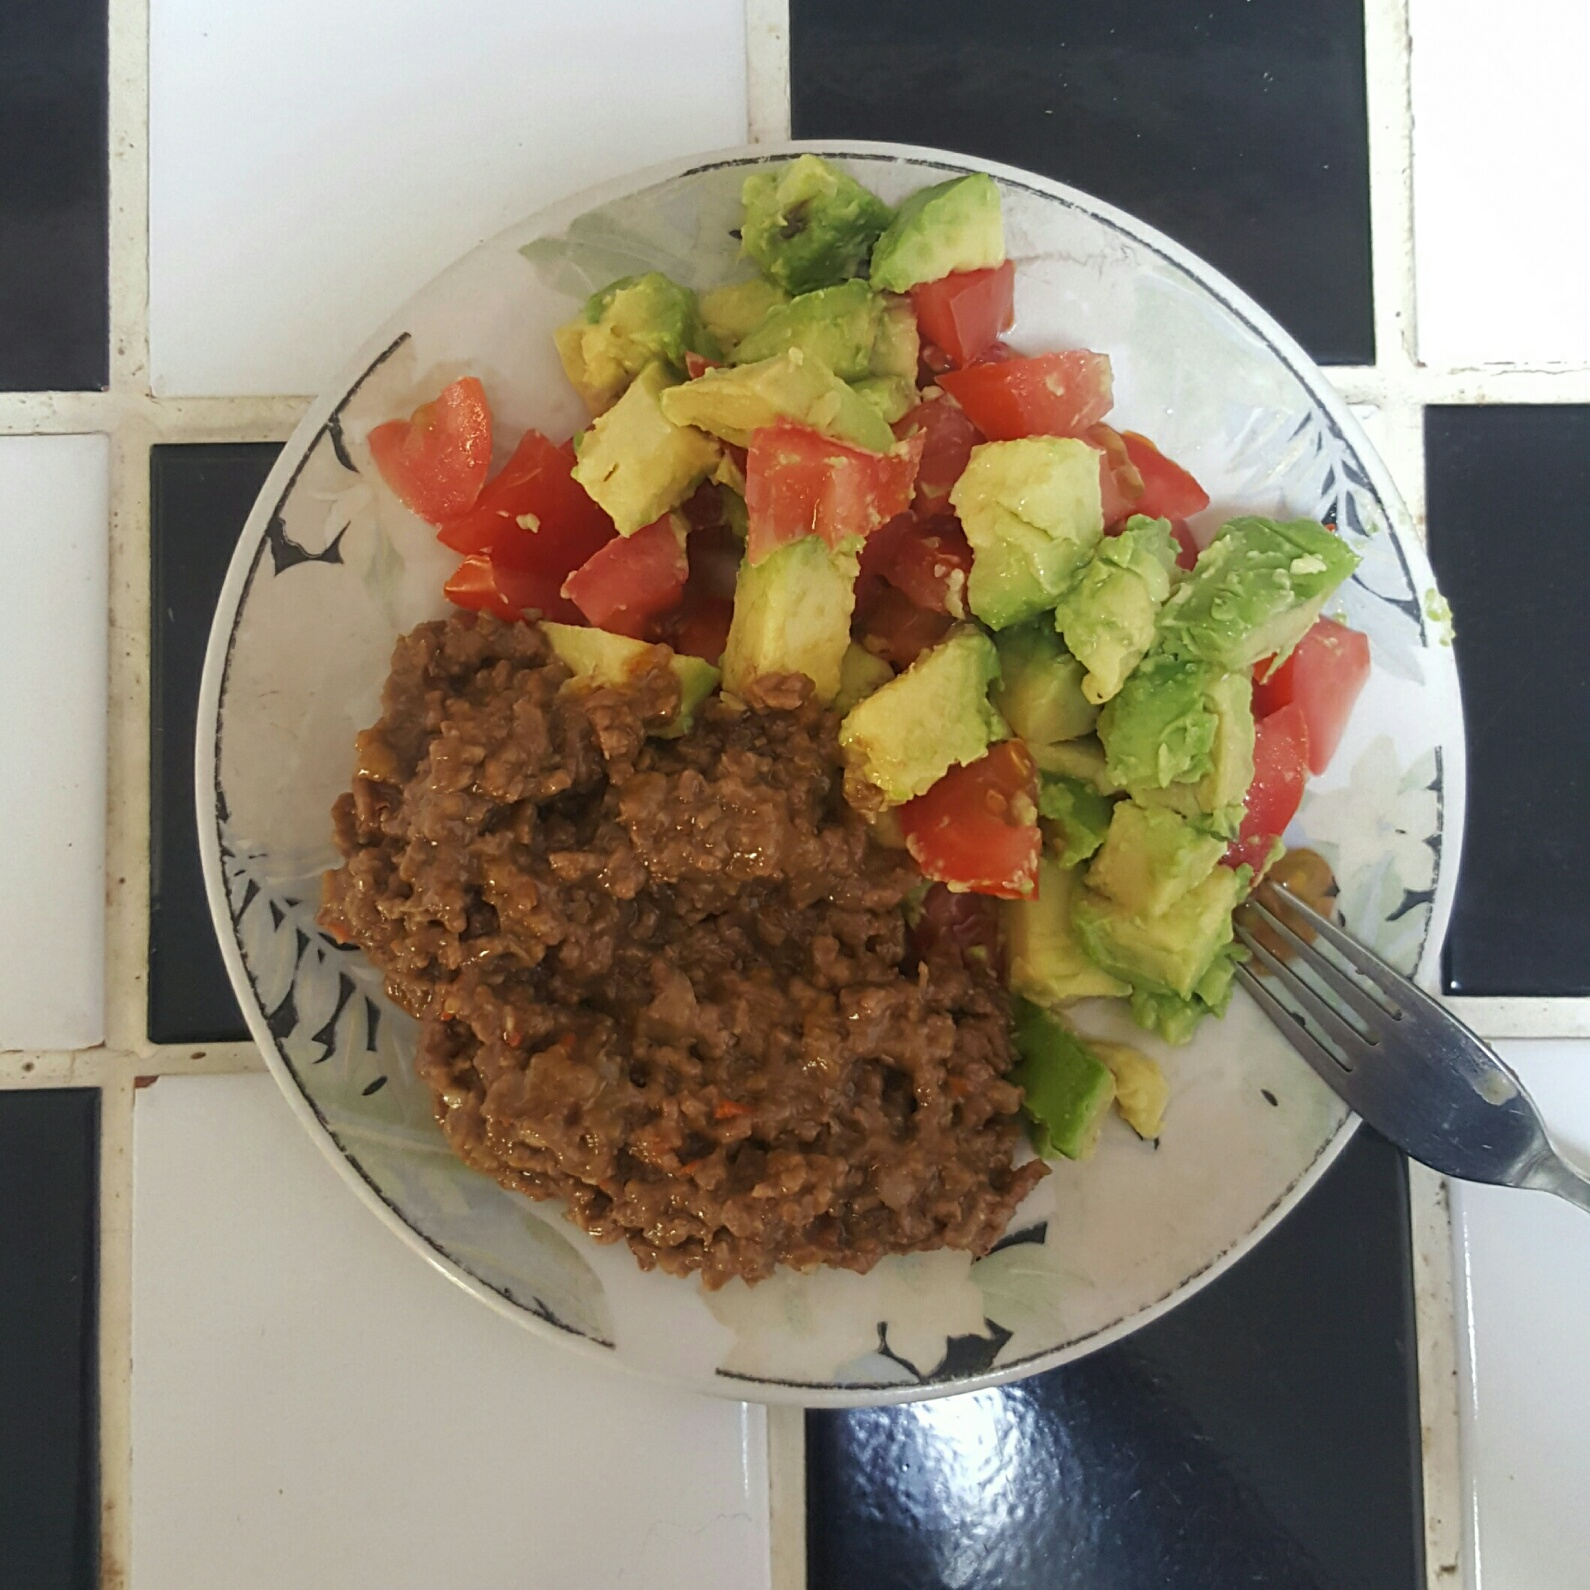 Onion, celery and pepper infused sauce on mince with tomato and avo salsa